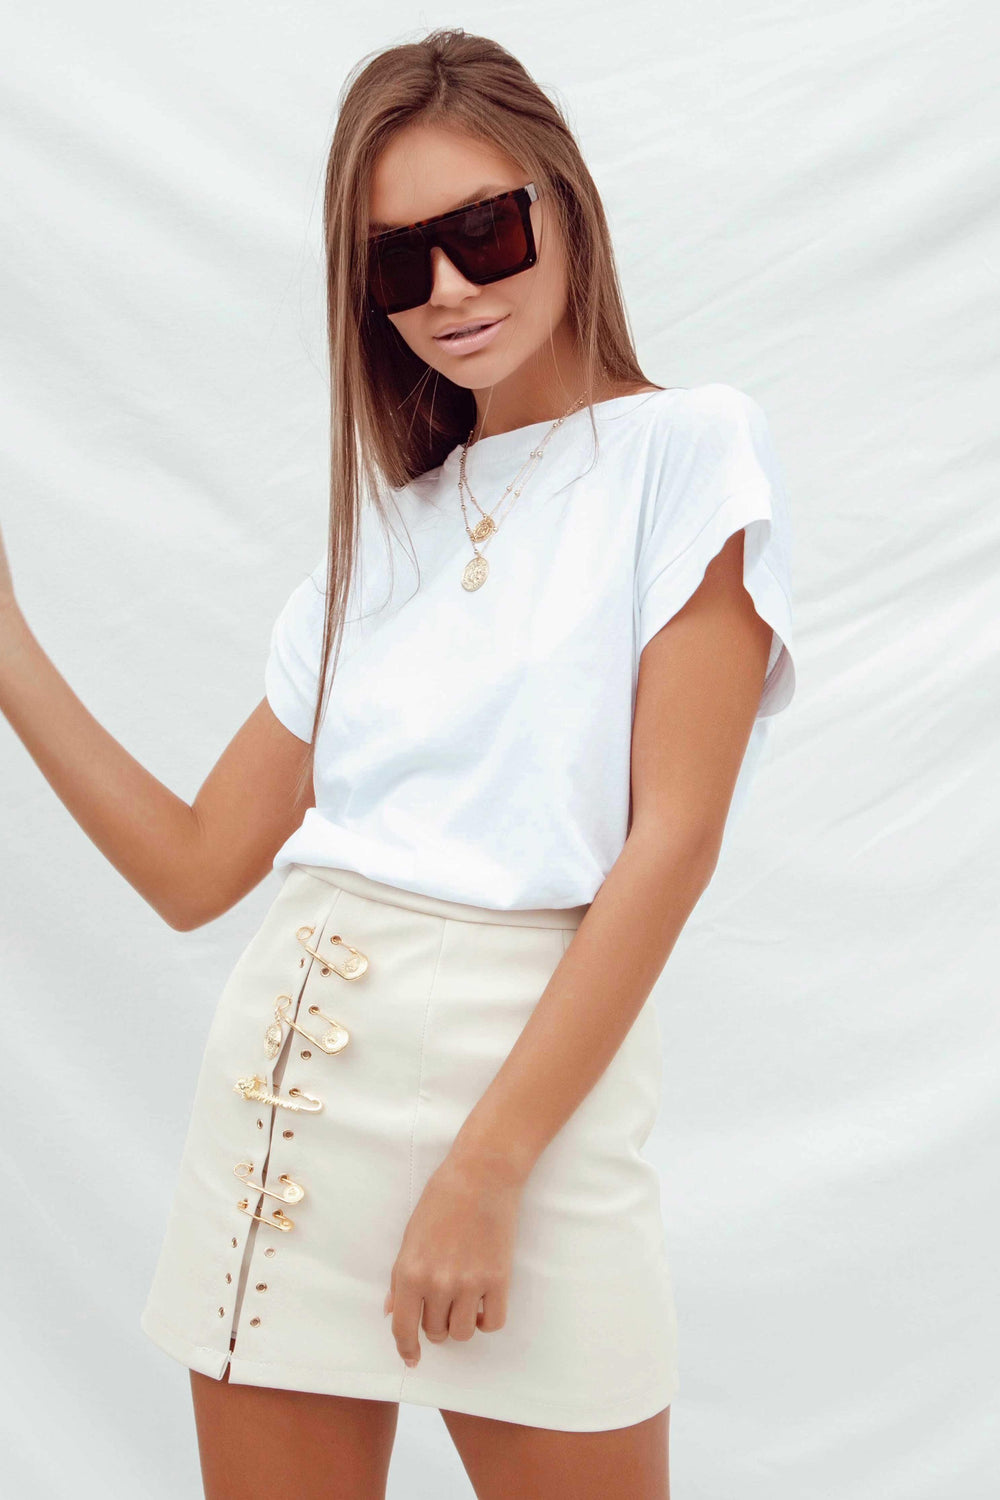 KARLA SKIRT IN BEIGE | Women's Online Shopping | CHICLEFRIQUE